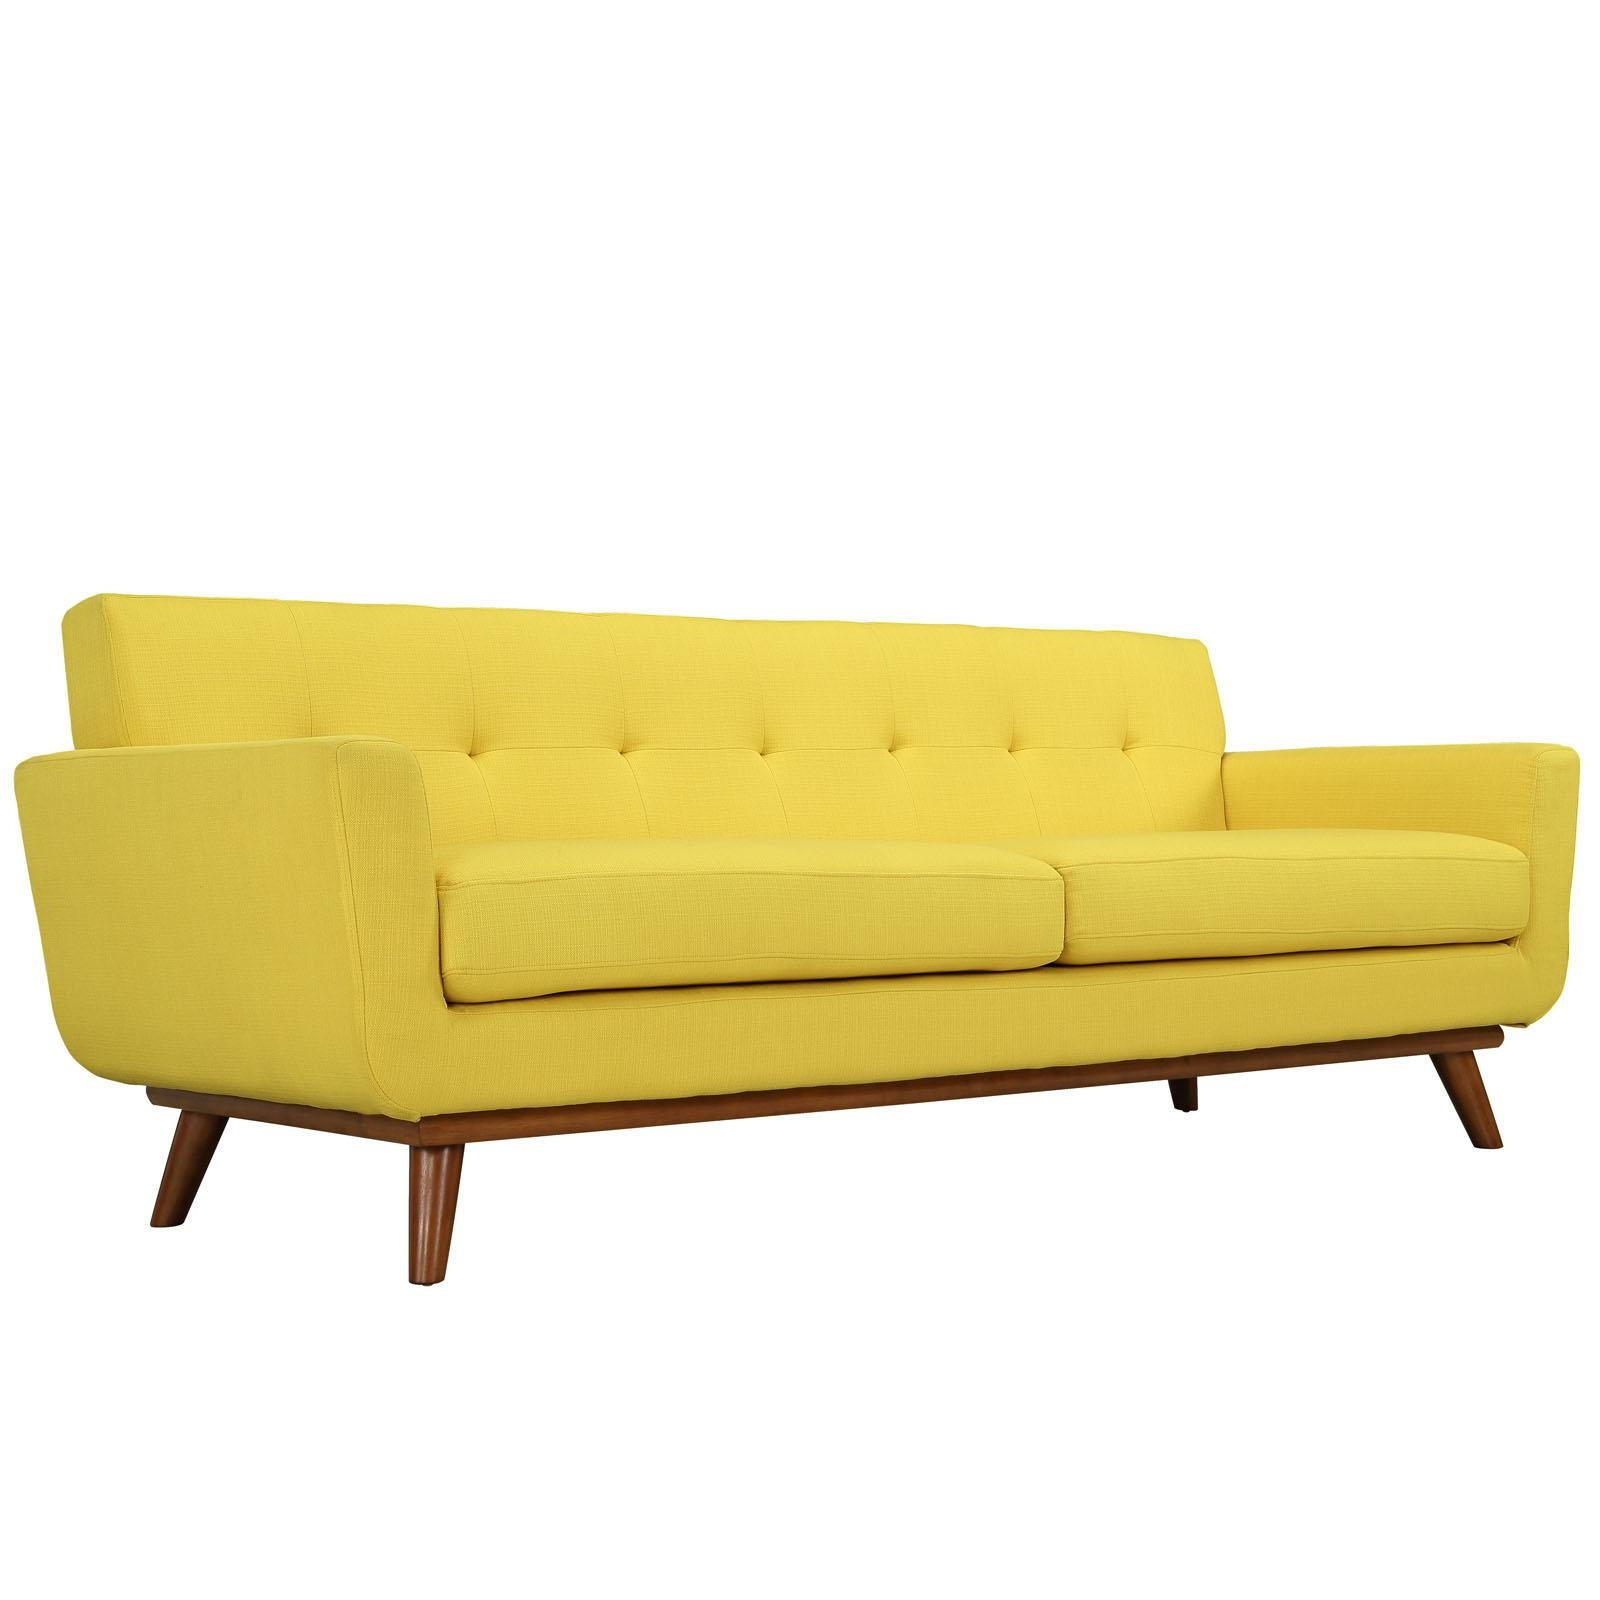 Furniture Rental, Event Furniture Rental, Party Furniture Rental Inside Yellow Sofa Chairs (Image 9 of 20)